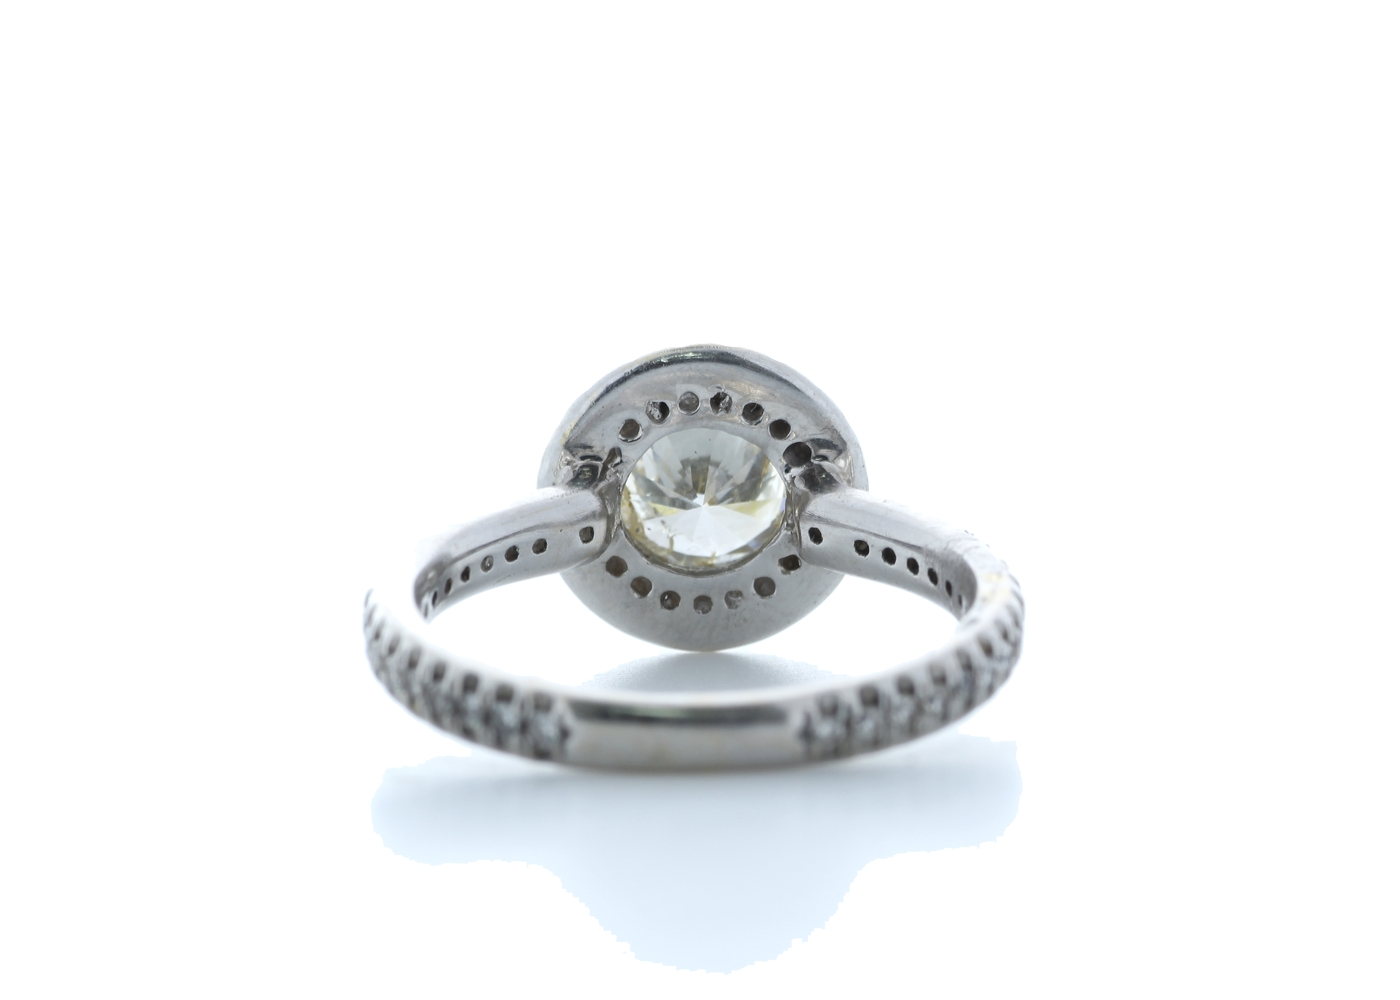 18ct White Gold Single Stone With Halo Setting Ring 1.39 Carats - Image 3 of 5